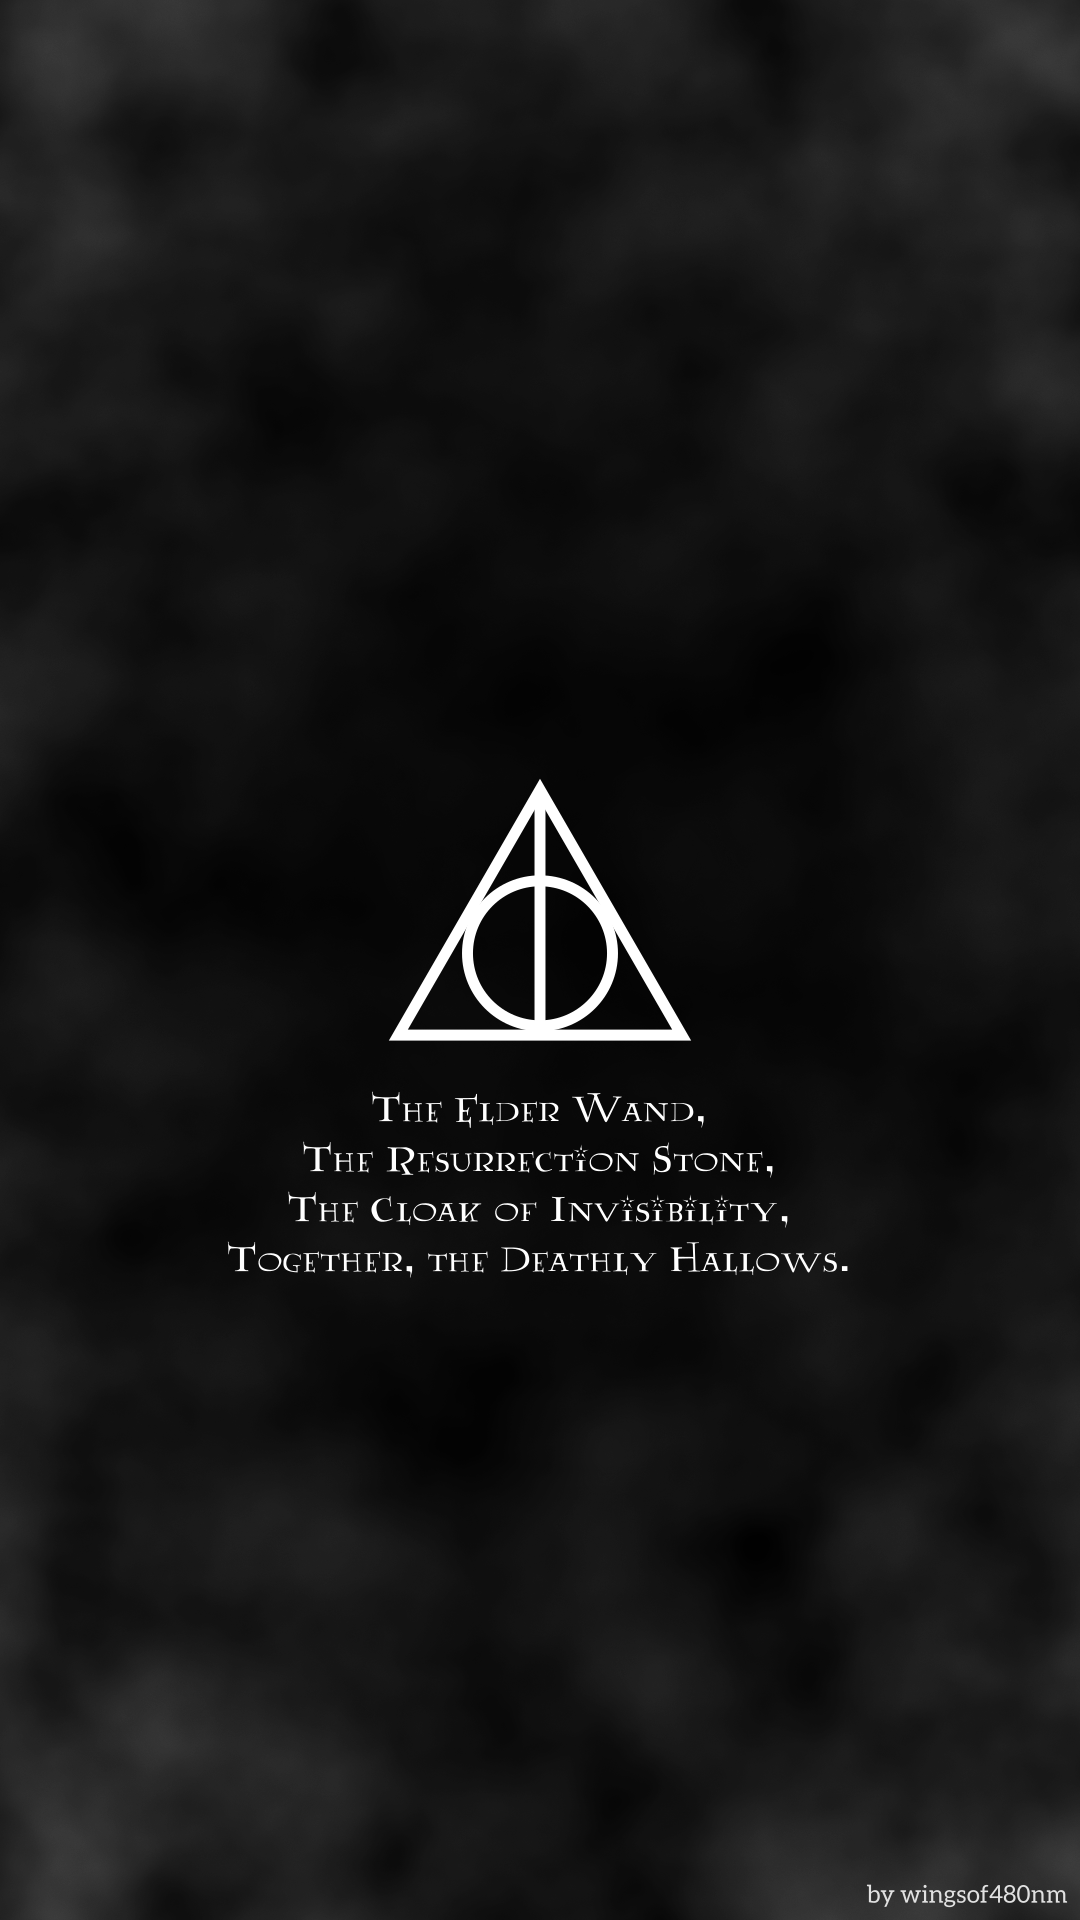 Deviantart Is The World S Largest Online Social Community For Artists And Art Harry Potter Wallpaper Phone Harry Potter Wallpaper Harry Potter Iphone Wallpaper